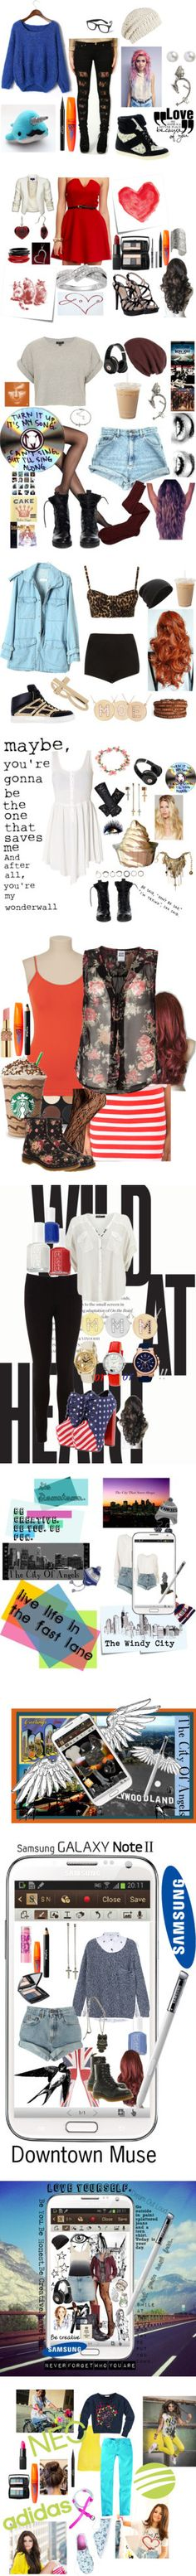 """I'm Just A Teen 2"" by ninjababe1999 on Polyvore"